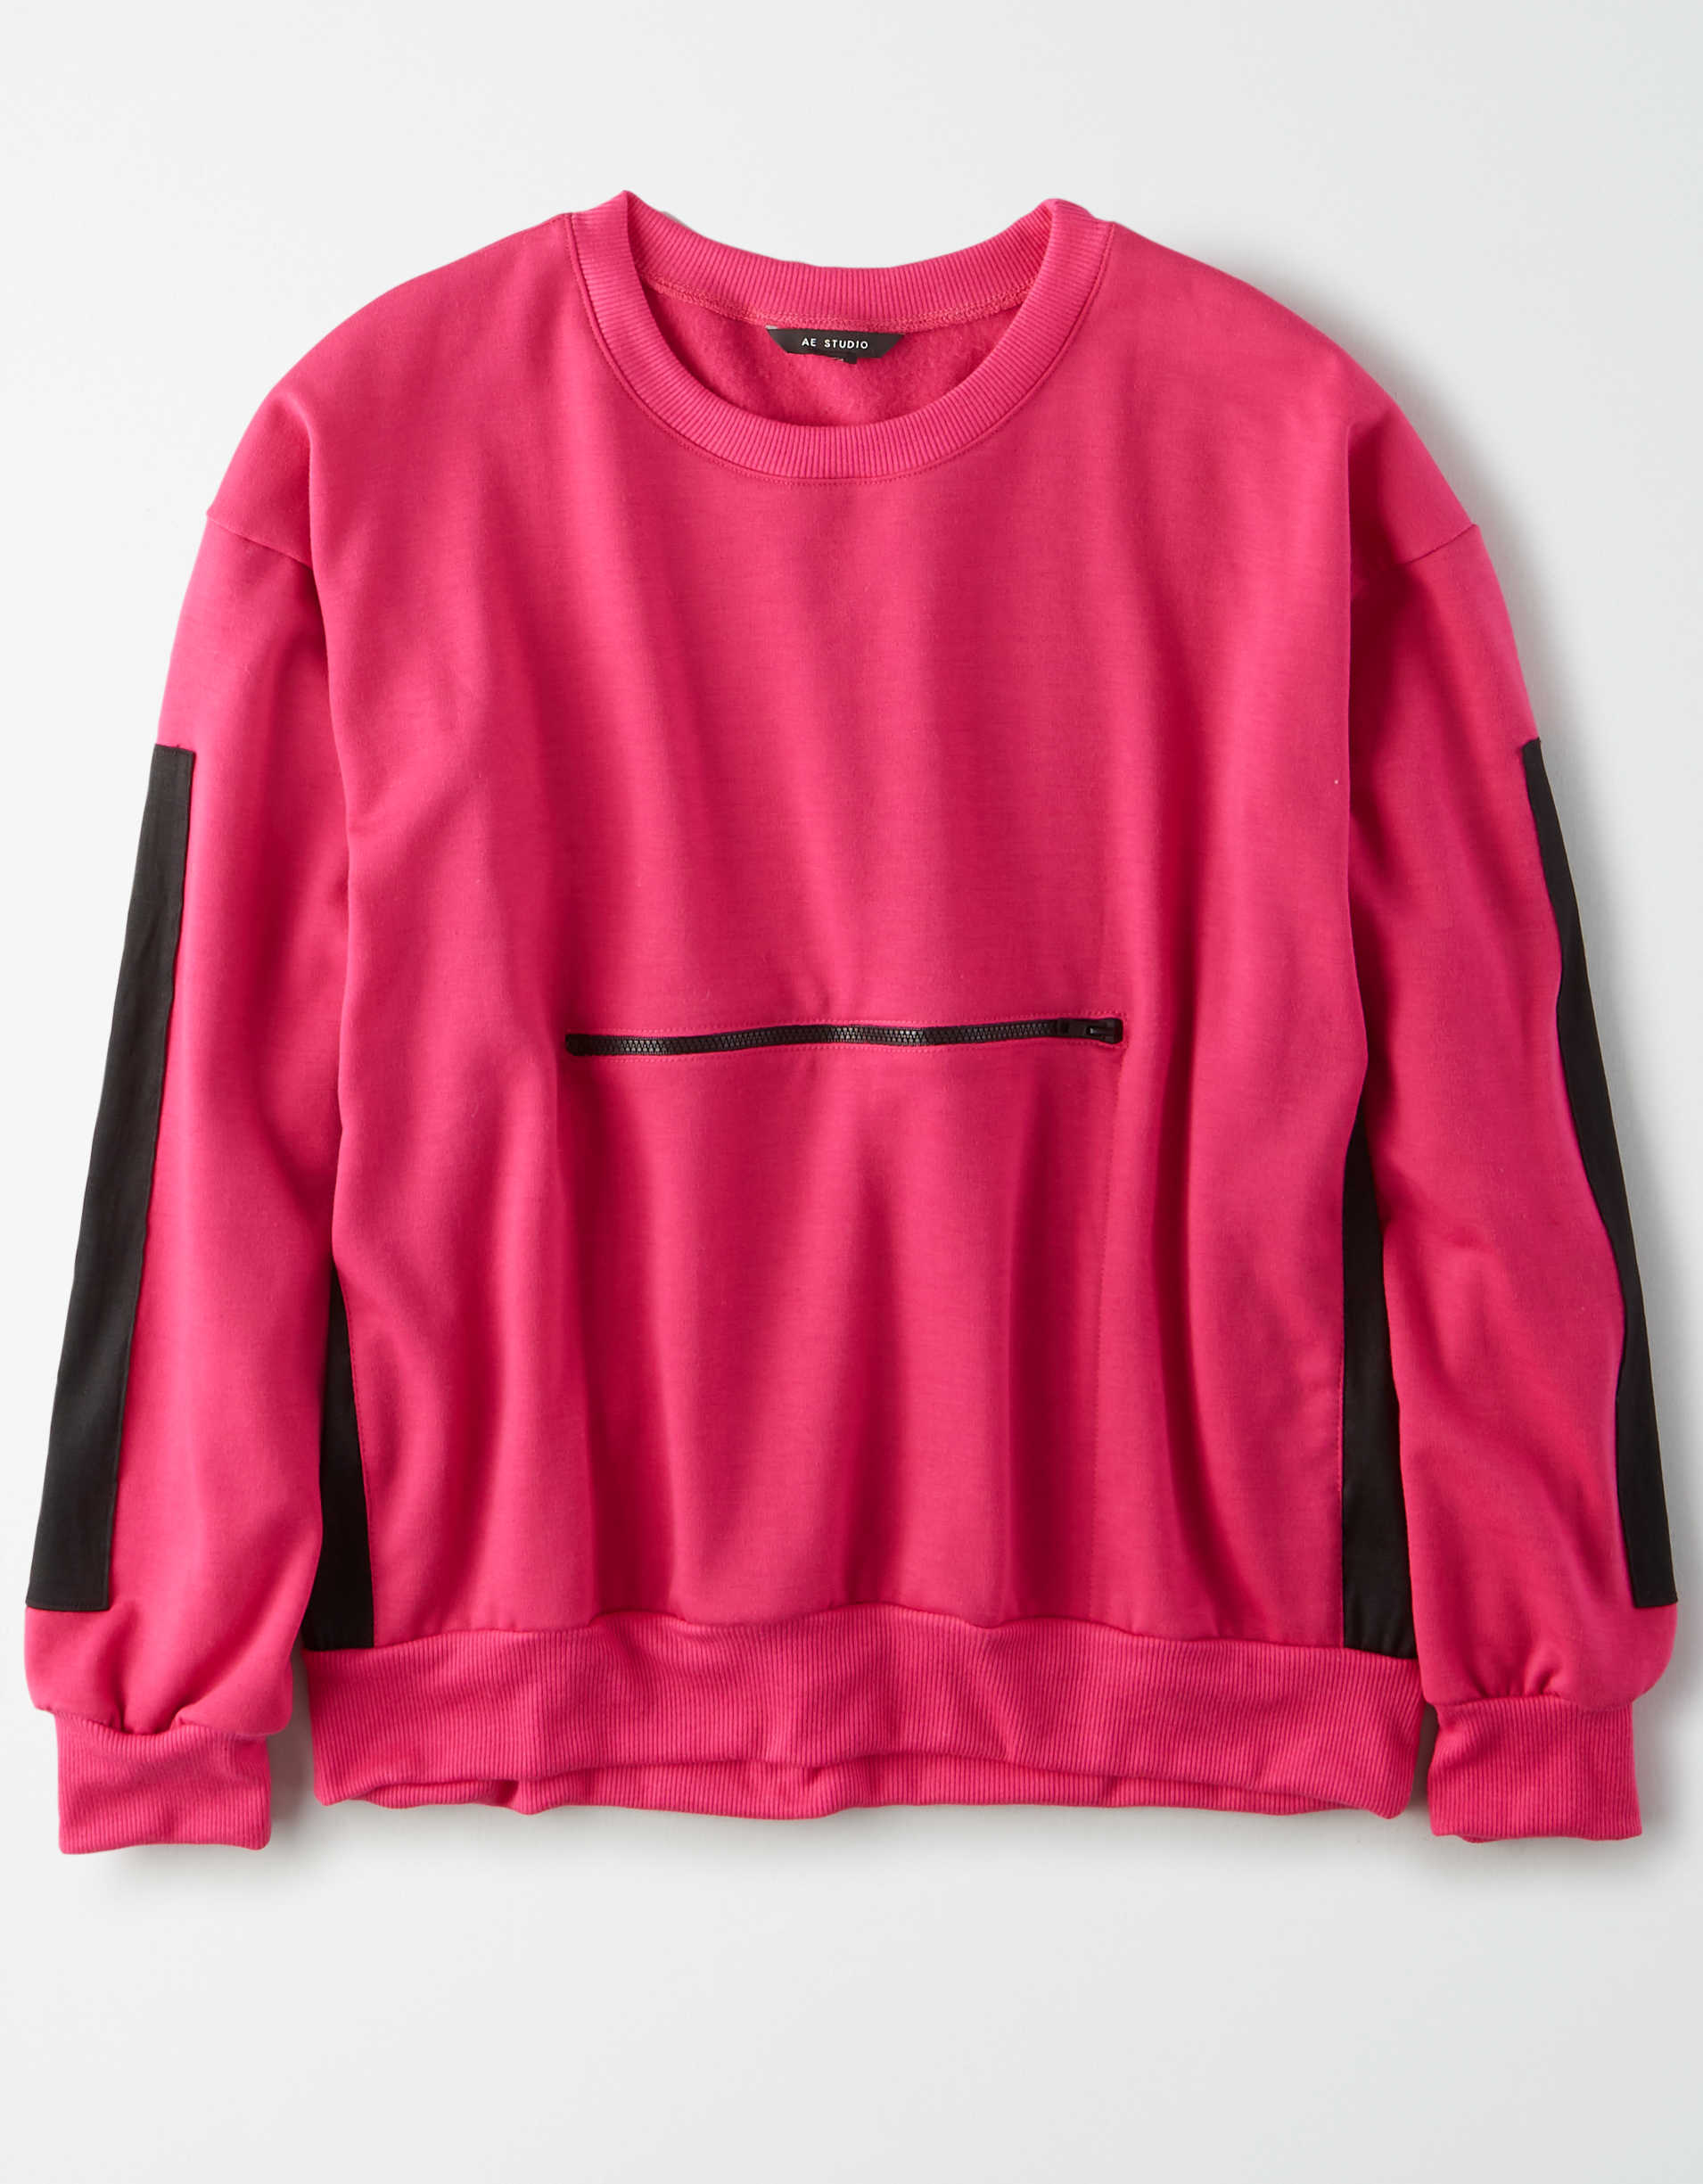 AE Studio Color Block Crew Neck Sweatshirt